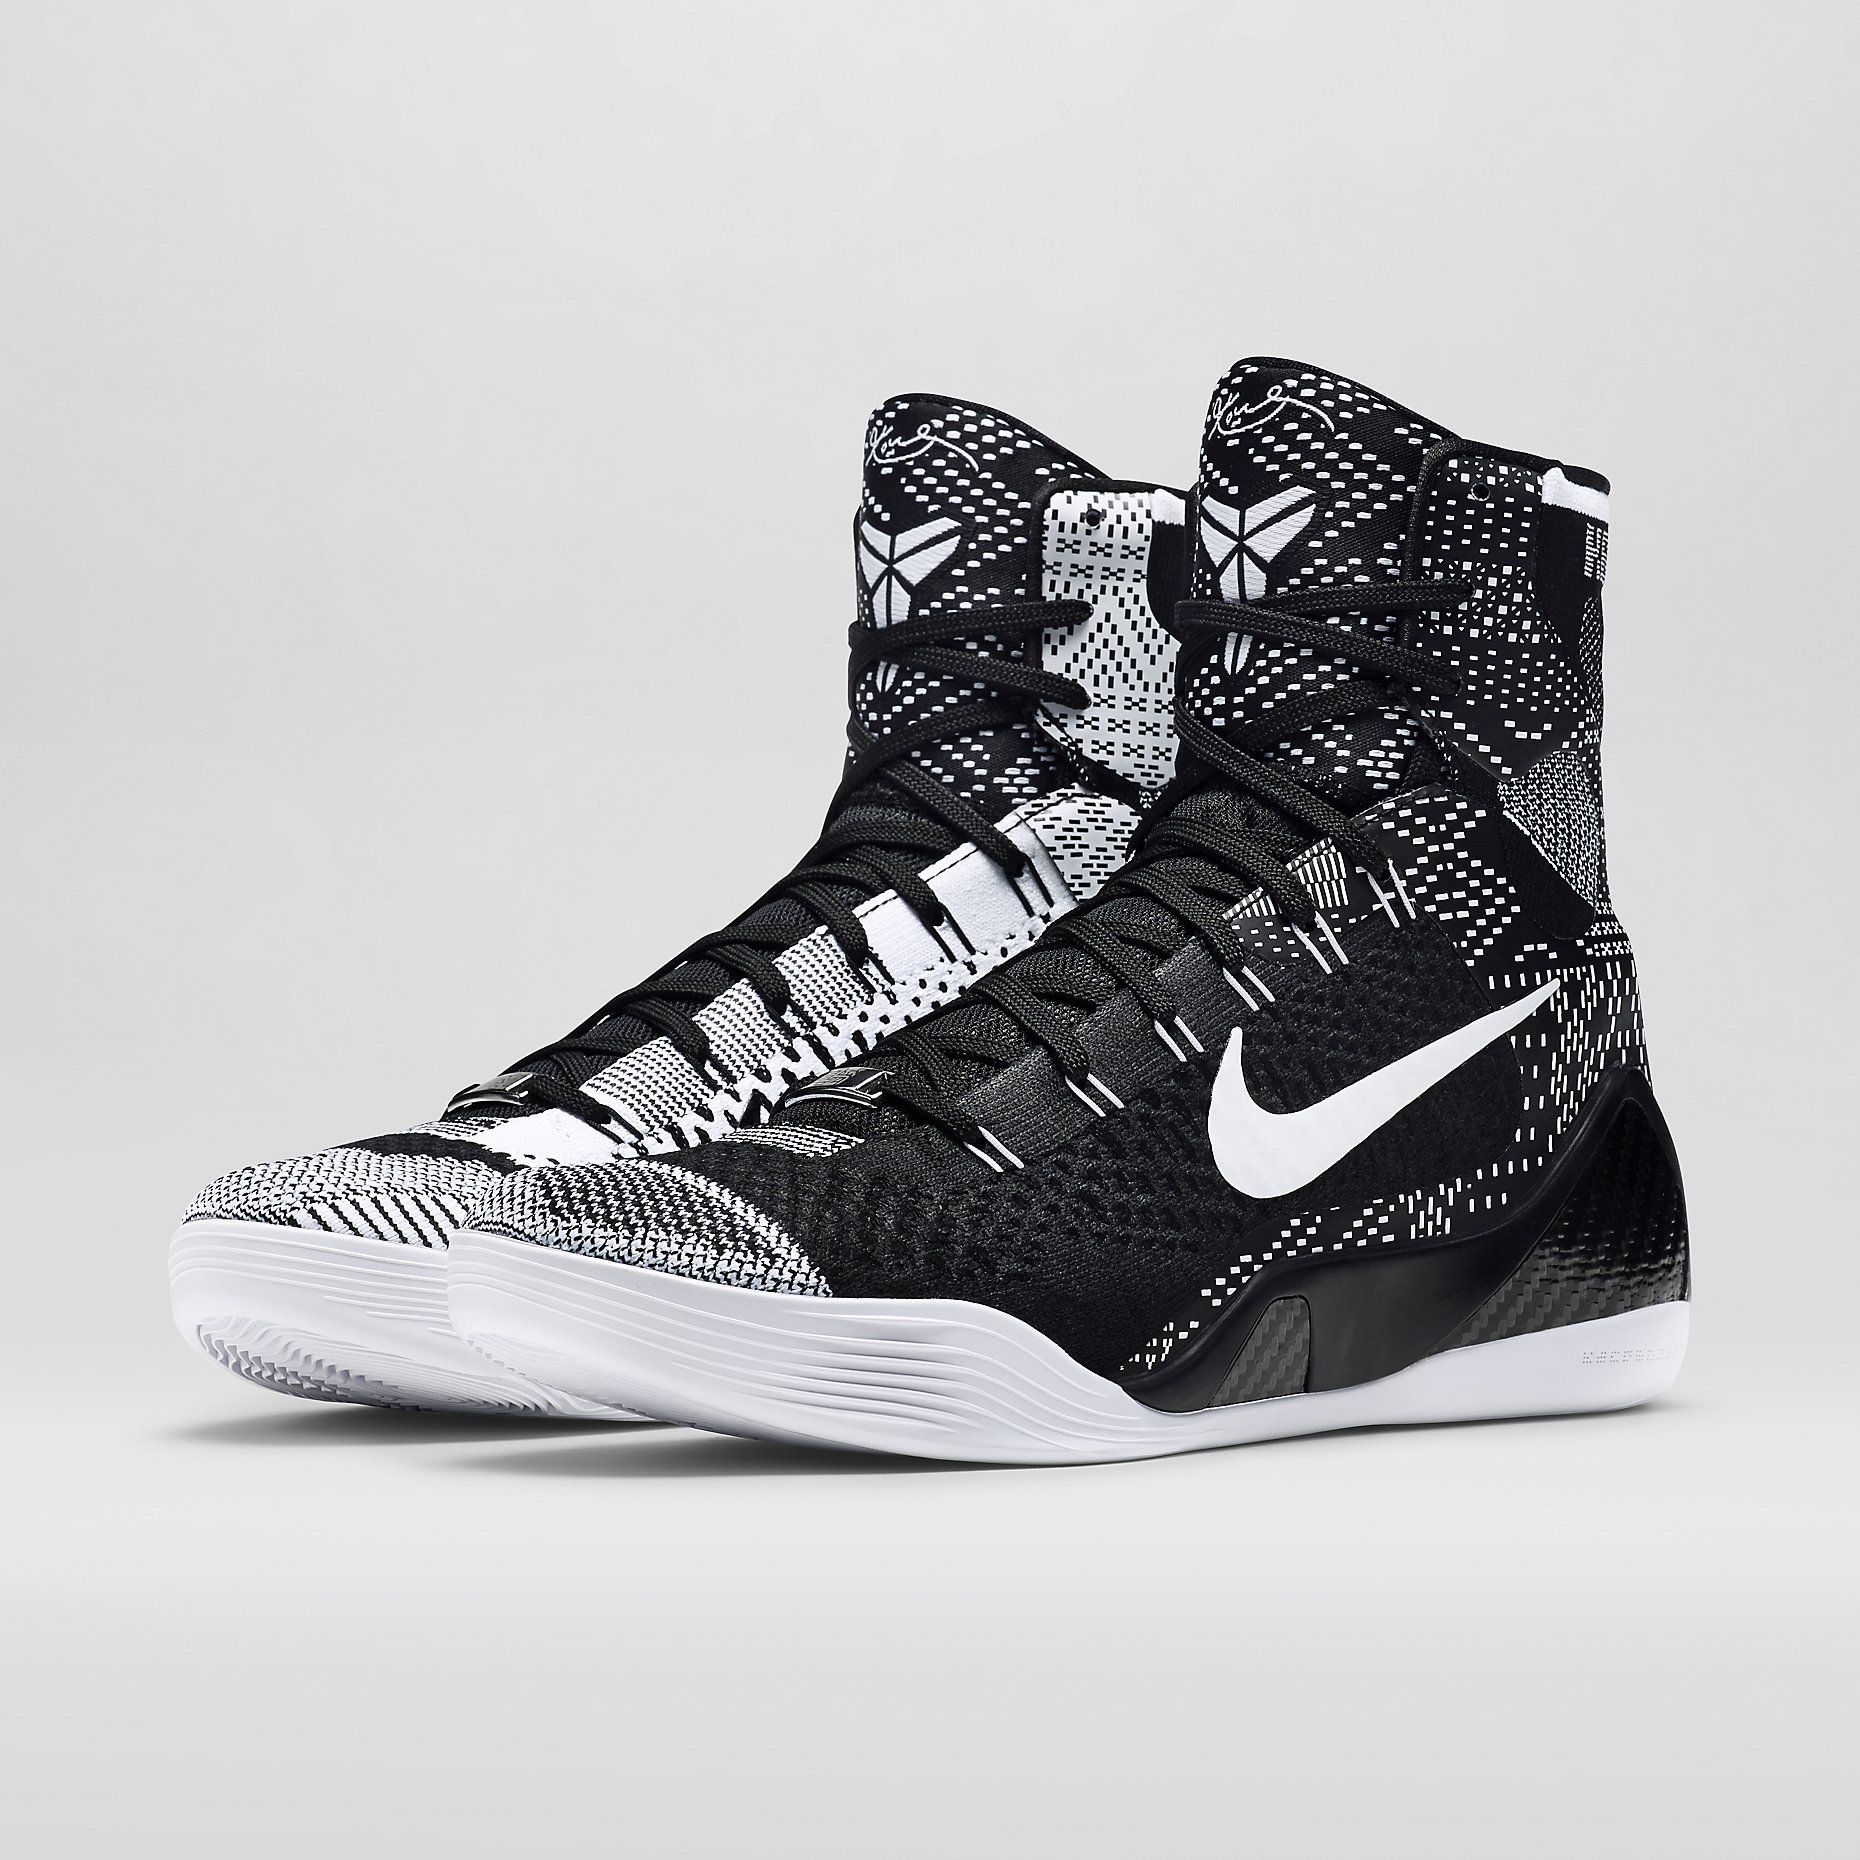 f2d8dcc952bb Kobe 9 Elite BHM Men s Basketball Shoe. Nike Store UK